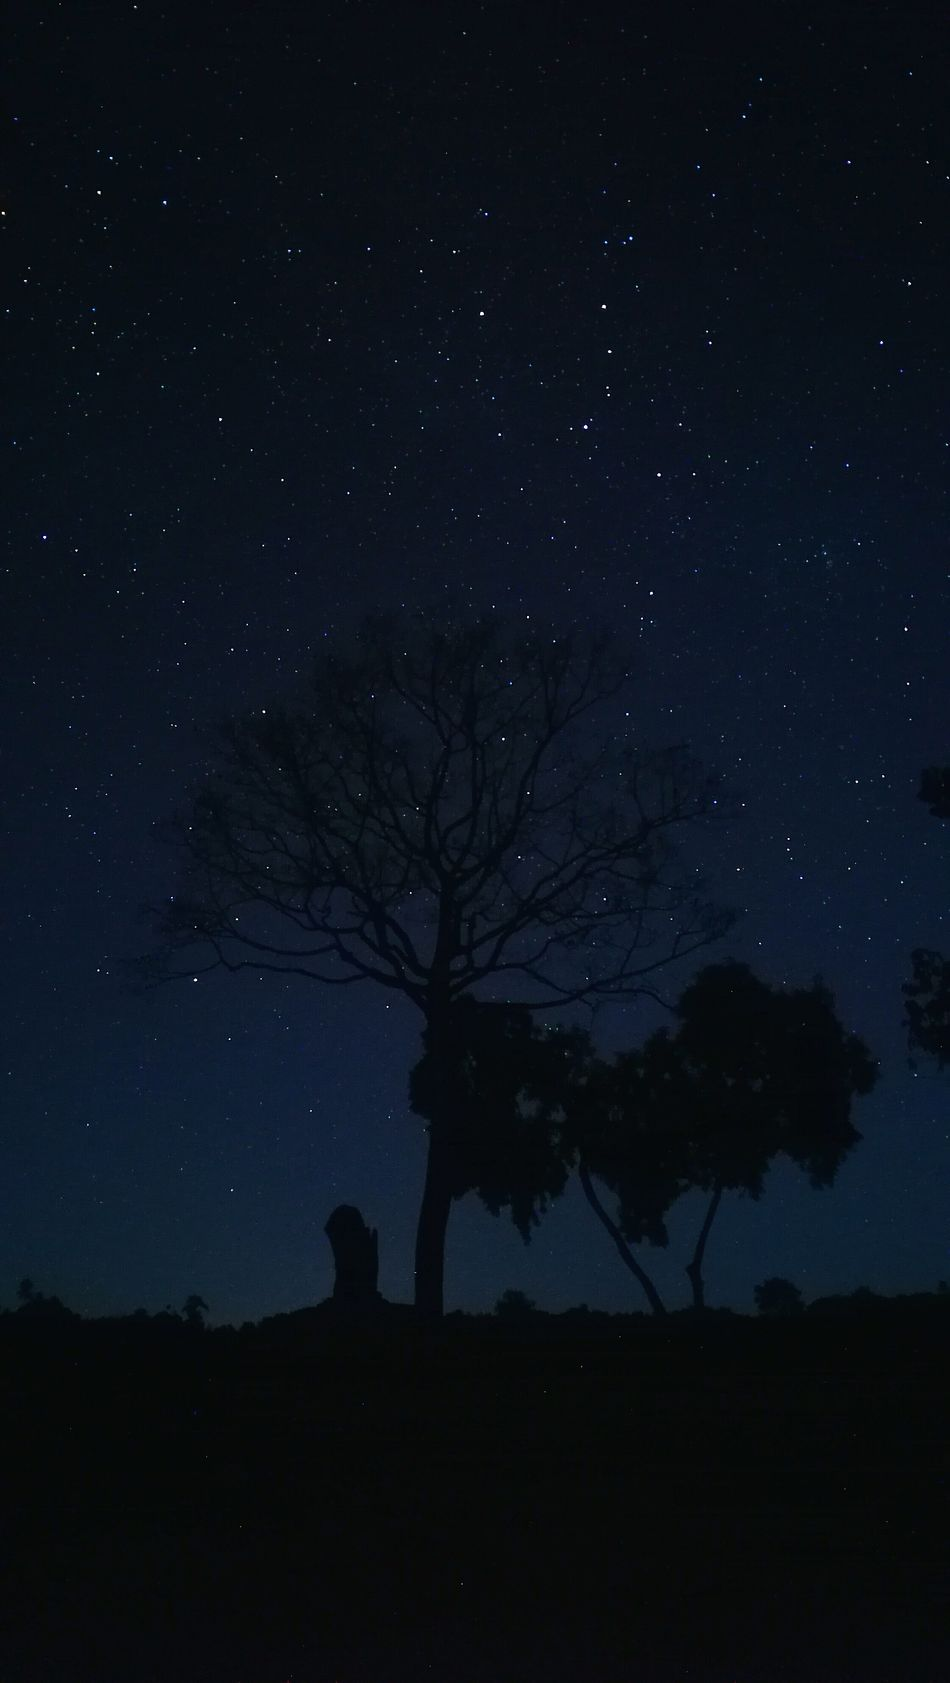 Star - Space Night Astronomy Beauty In Nature Tree Space And Astronomy Sky Nature Galaxy Glittering Star Field No People Outdoors Low Angle View Idyllic Scenics Silhouette Constellation Tranquil Scene Tranquility Starry Night Milky Way Milkywaygalaxy Milkywaypudding Cloud - Sky